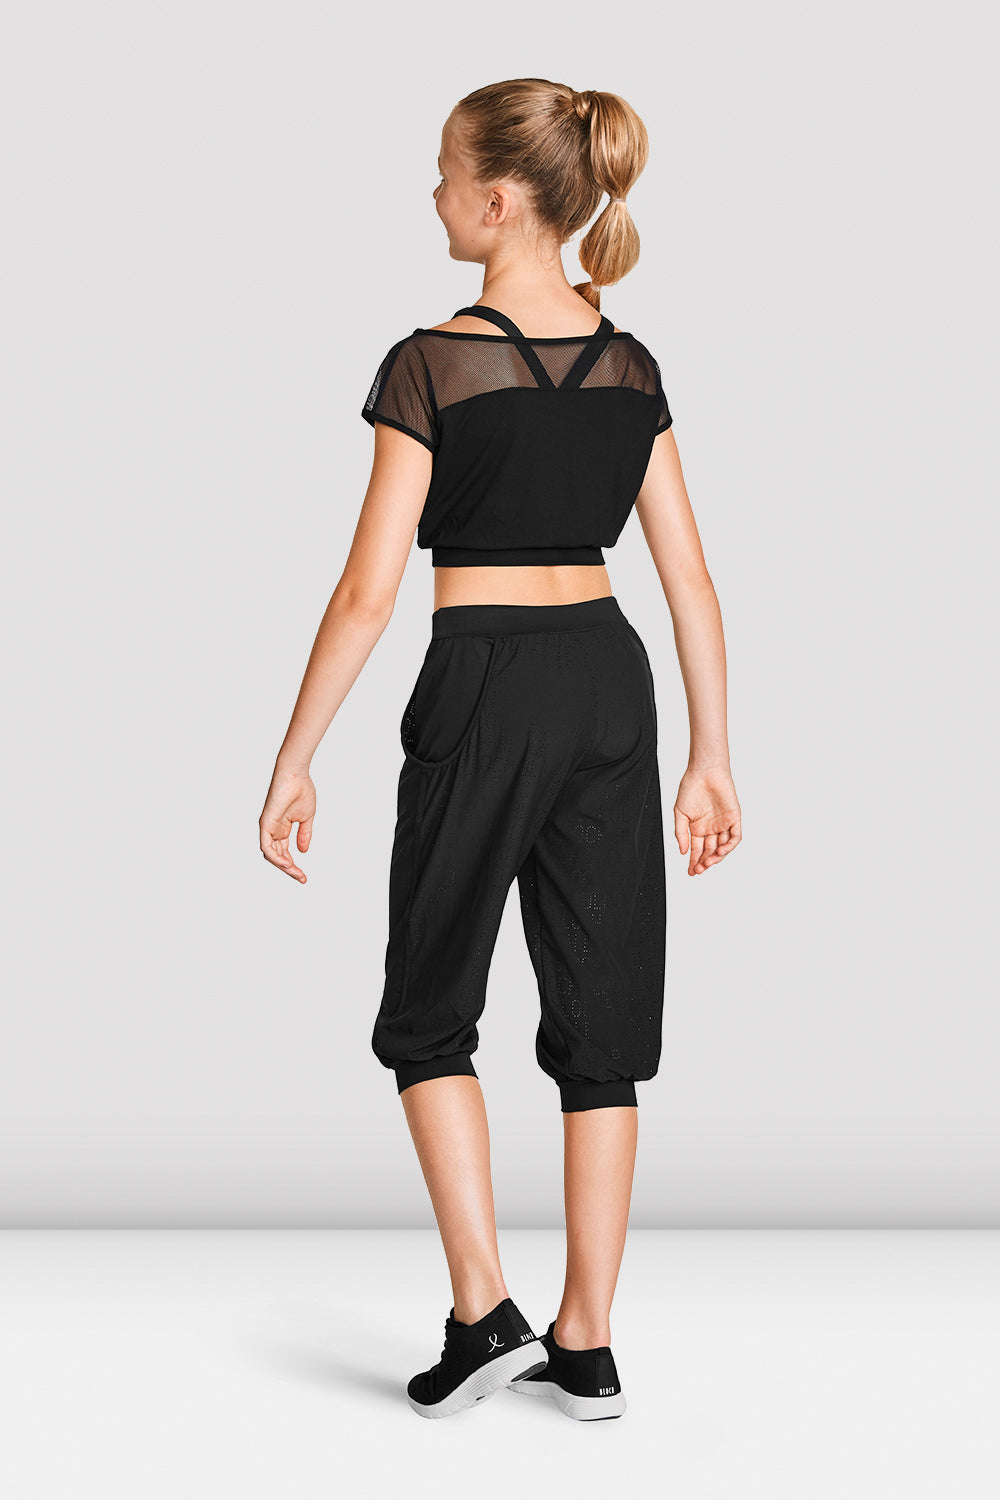 Girls Perforated Crop Pant